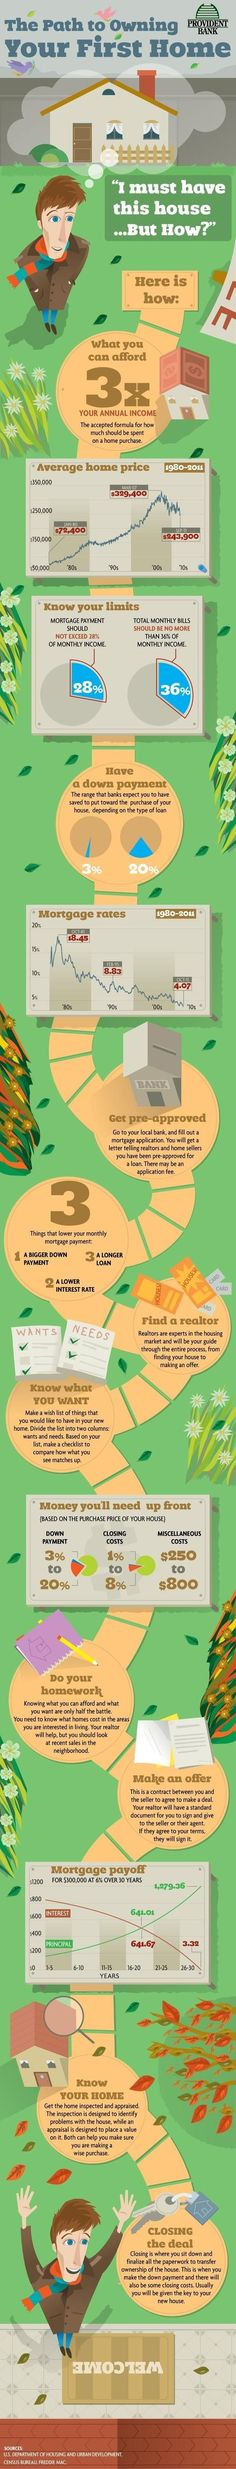 buying your first home infographic